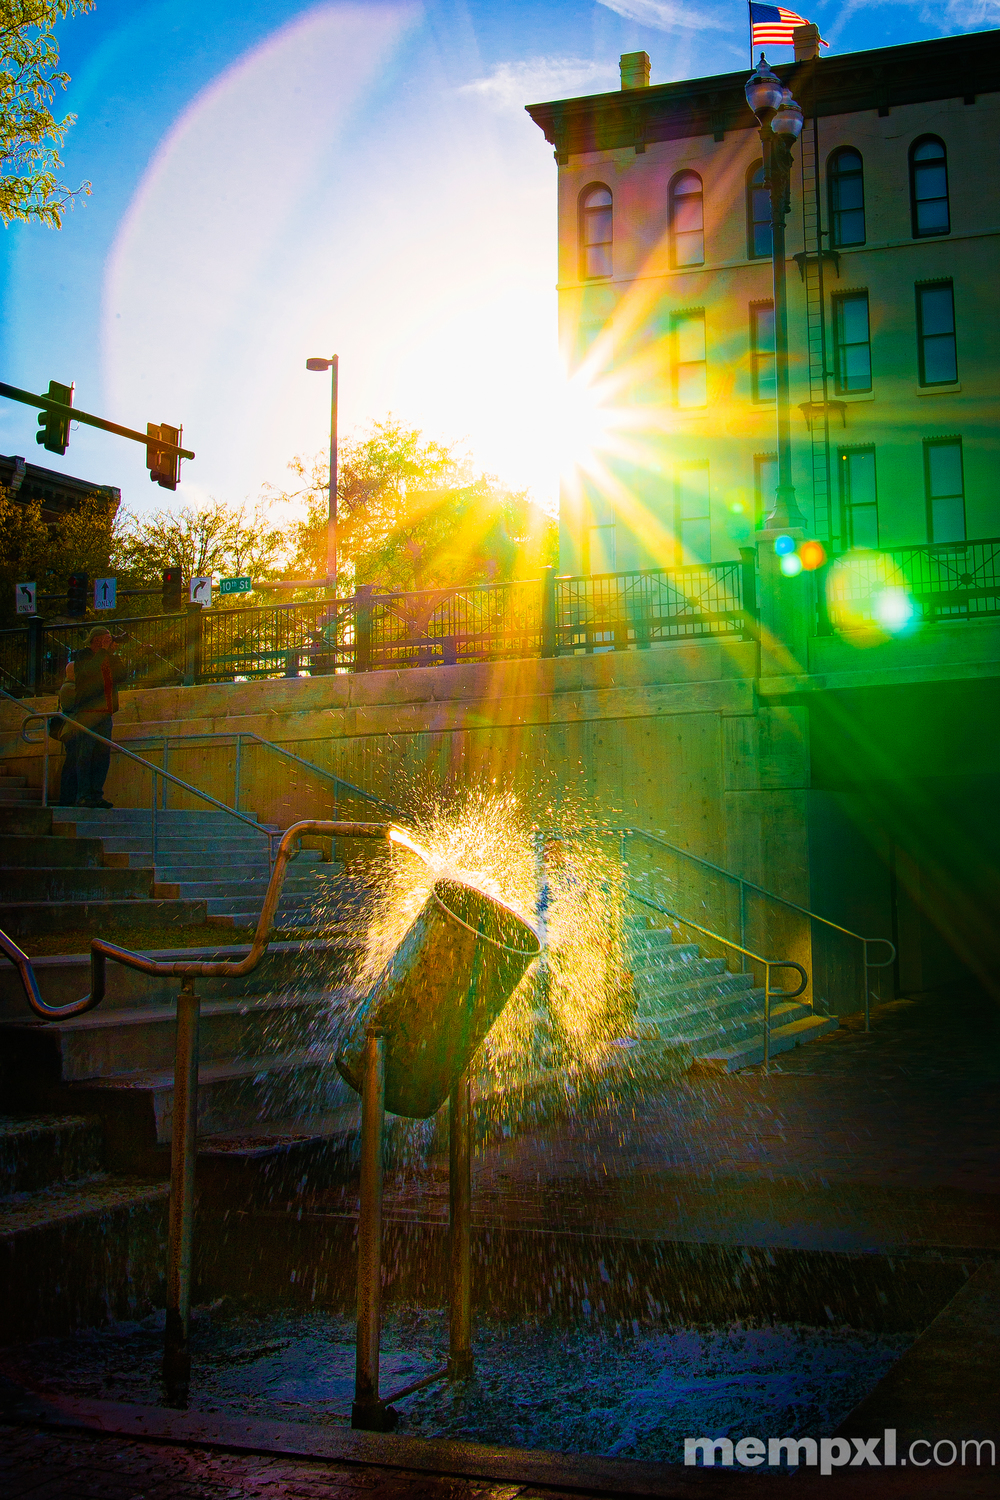 Water Bucket Sun Flare 2014 WM.jpg